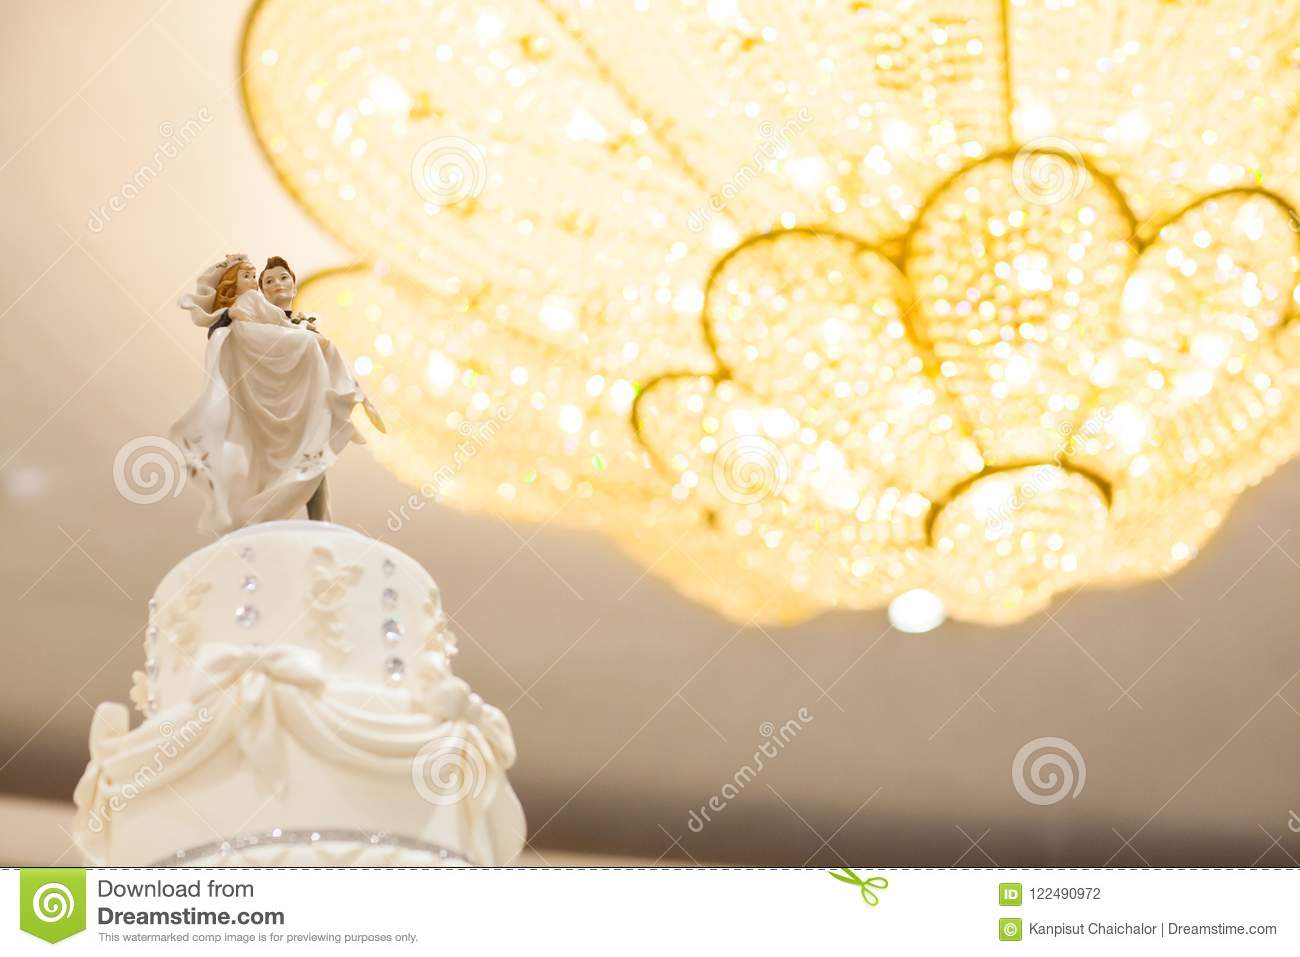 Figurines Of The Bride And Groom On A Wedding Cake. Stock Photo ...